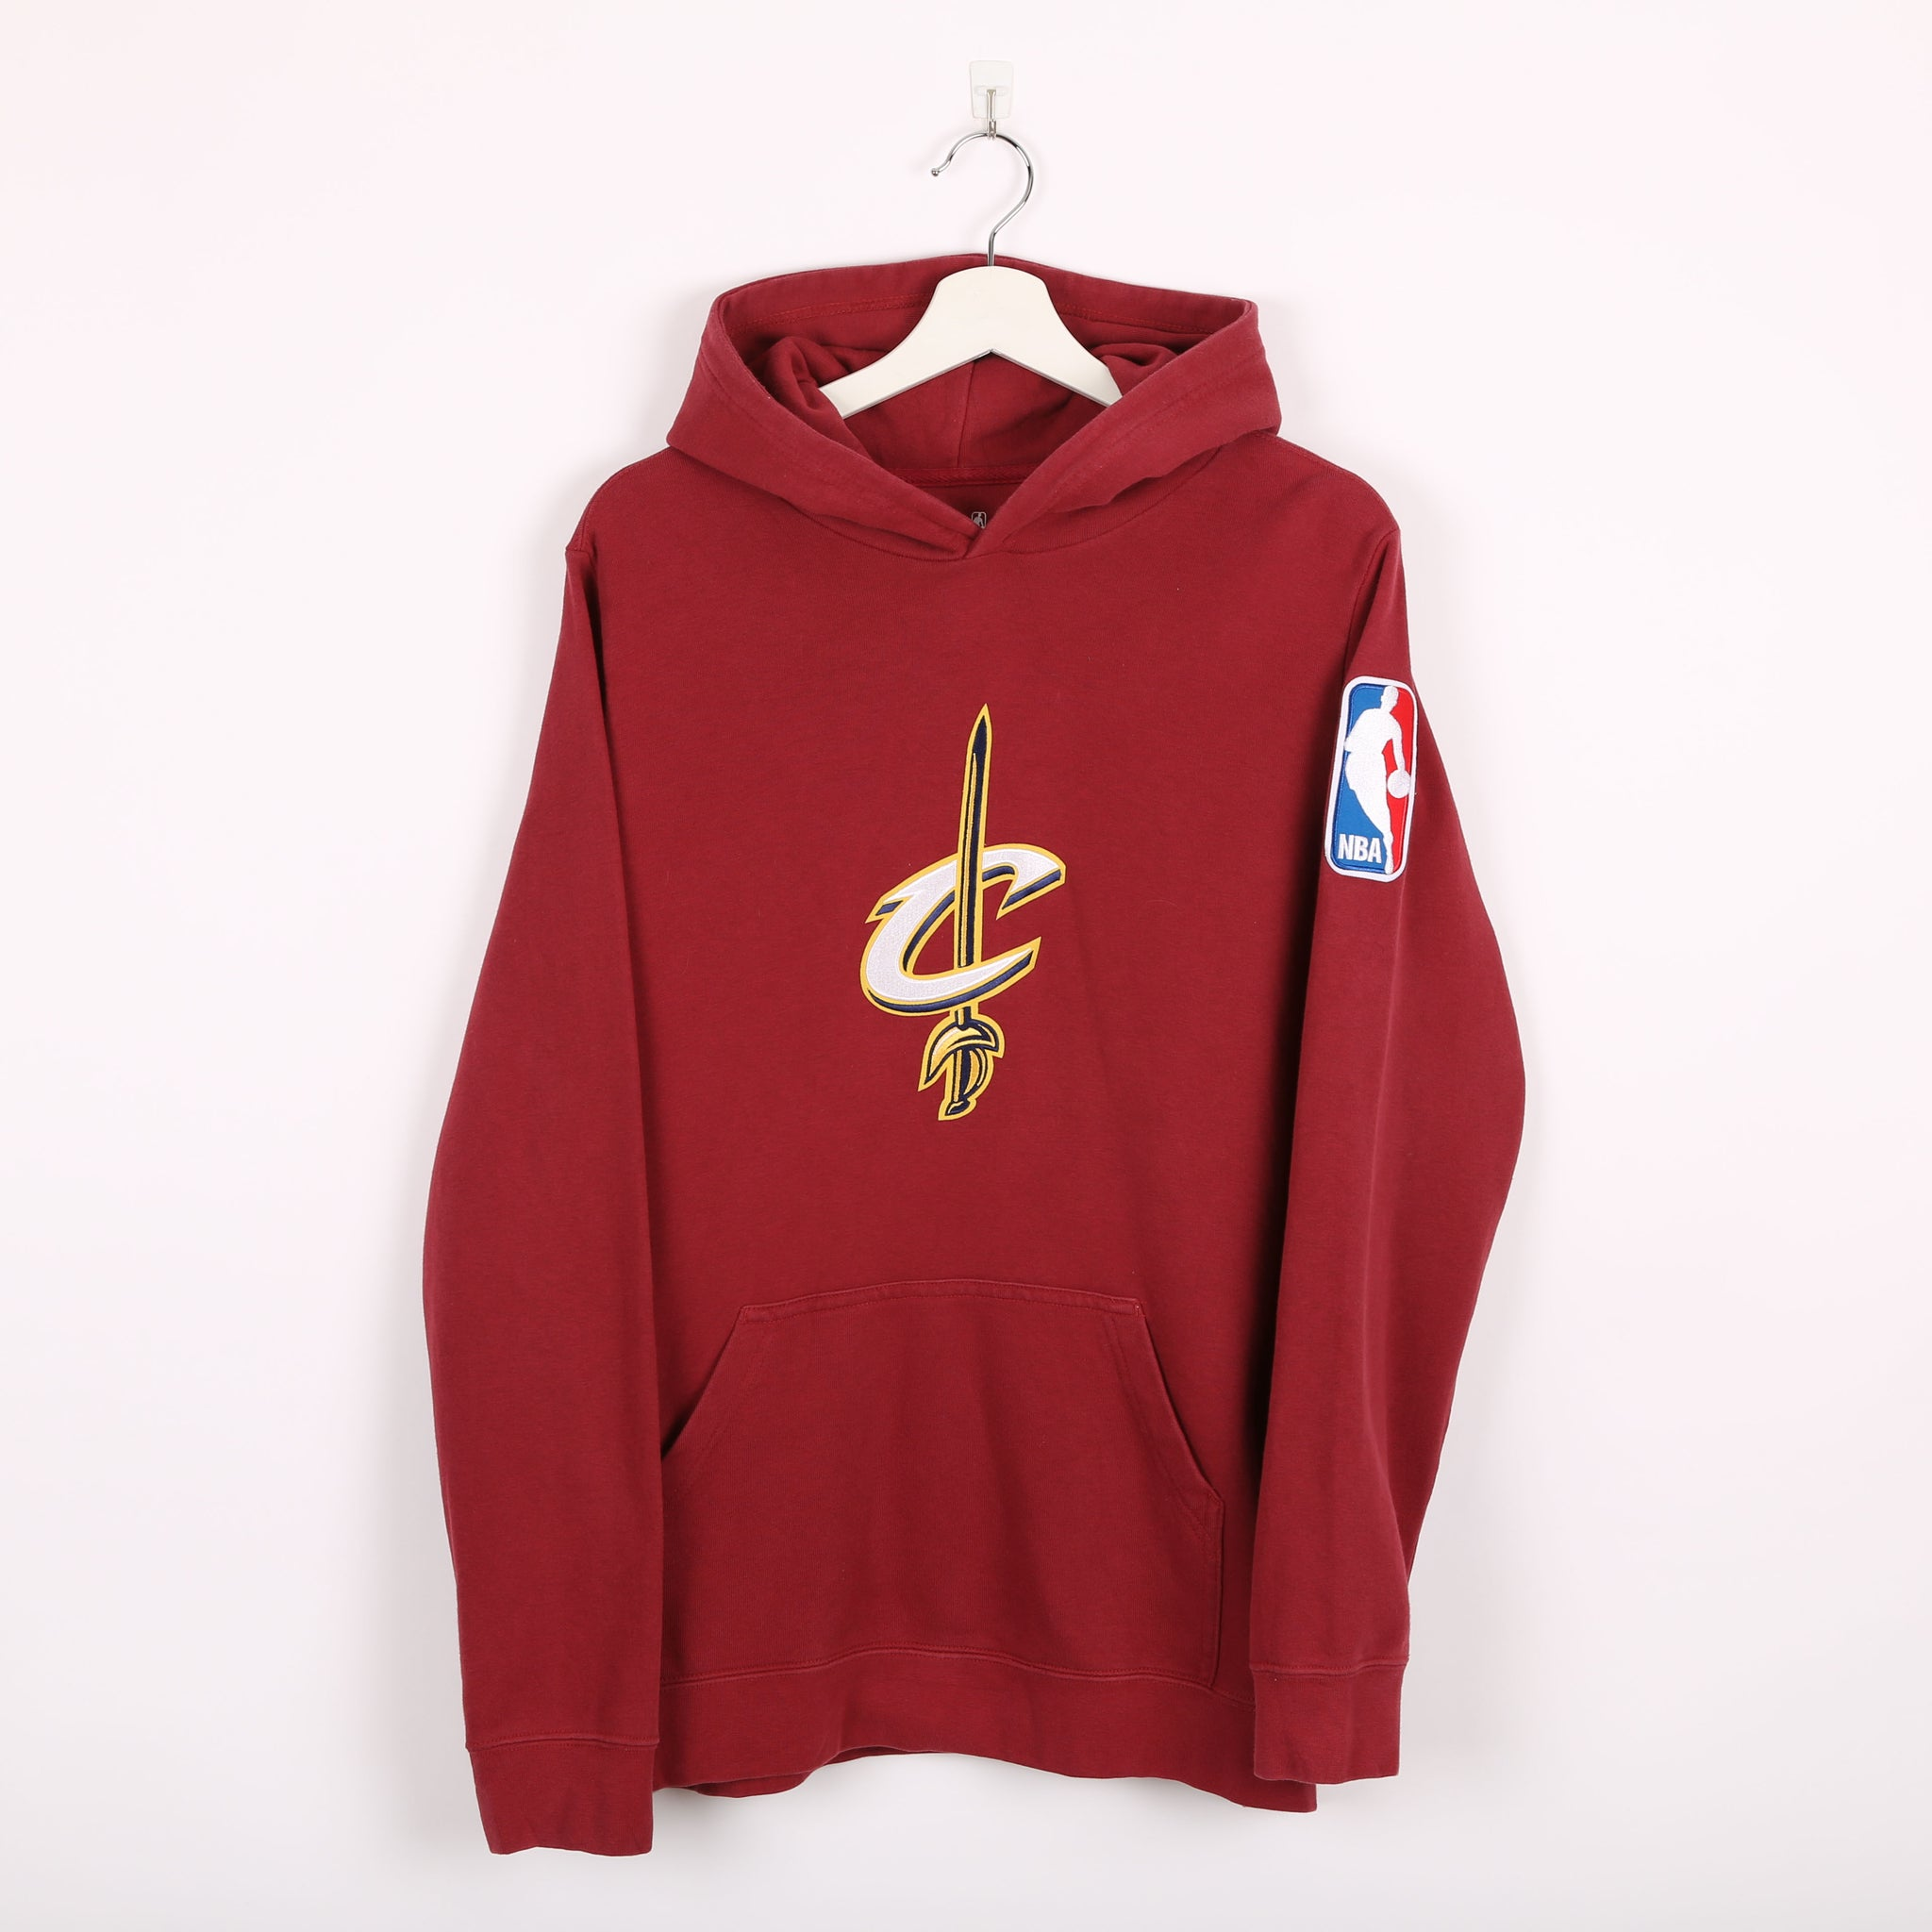 NBA Merch USA Team Hoodie Red Small